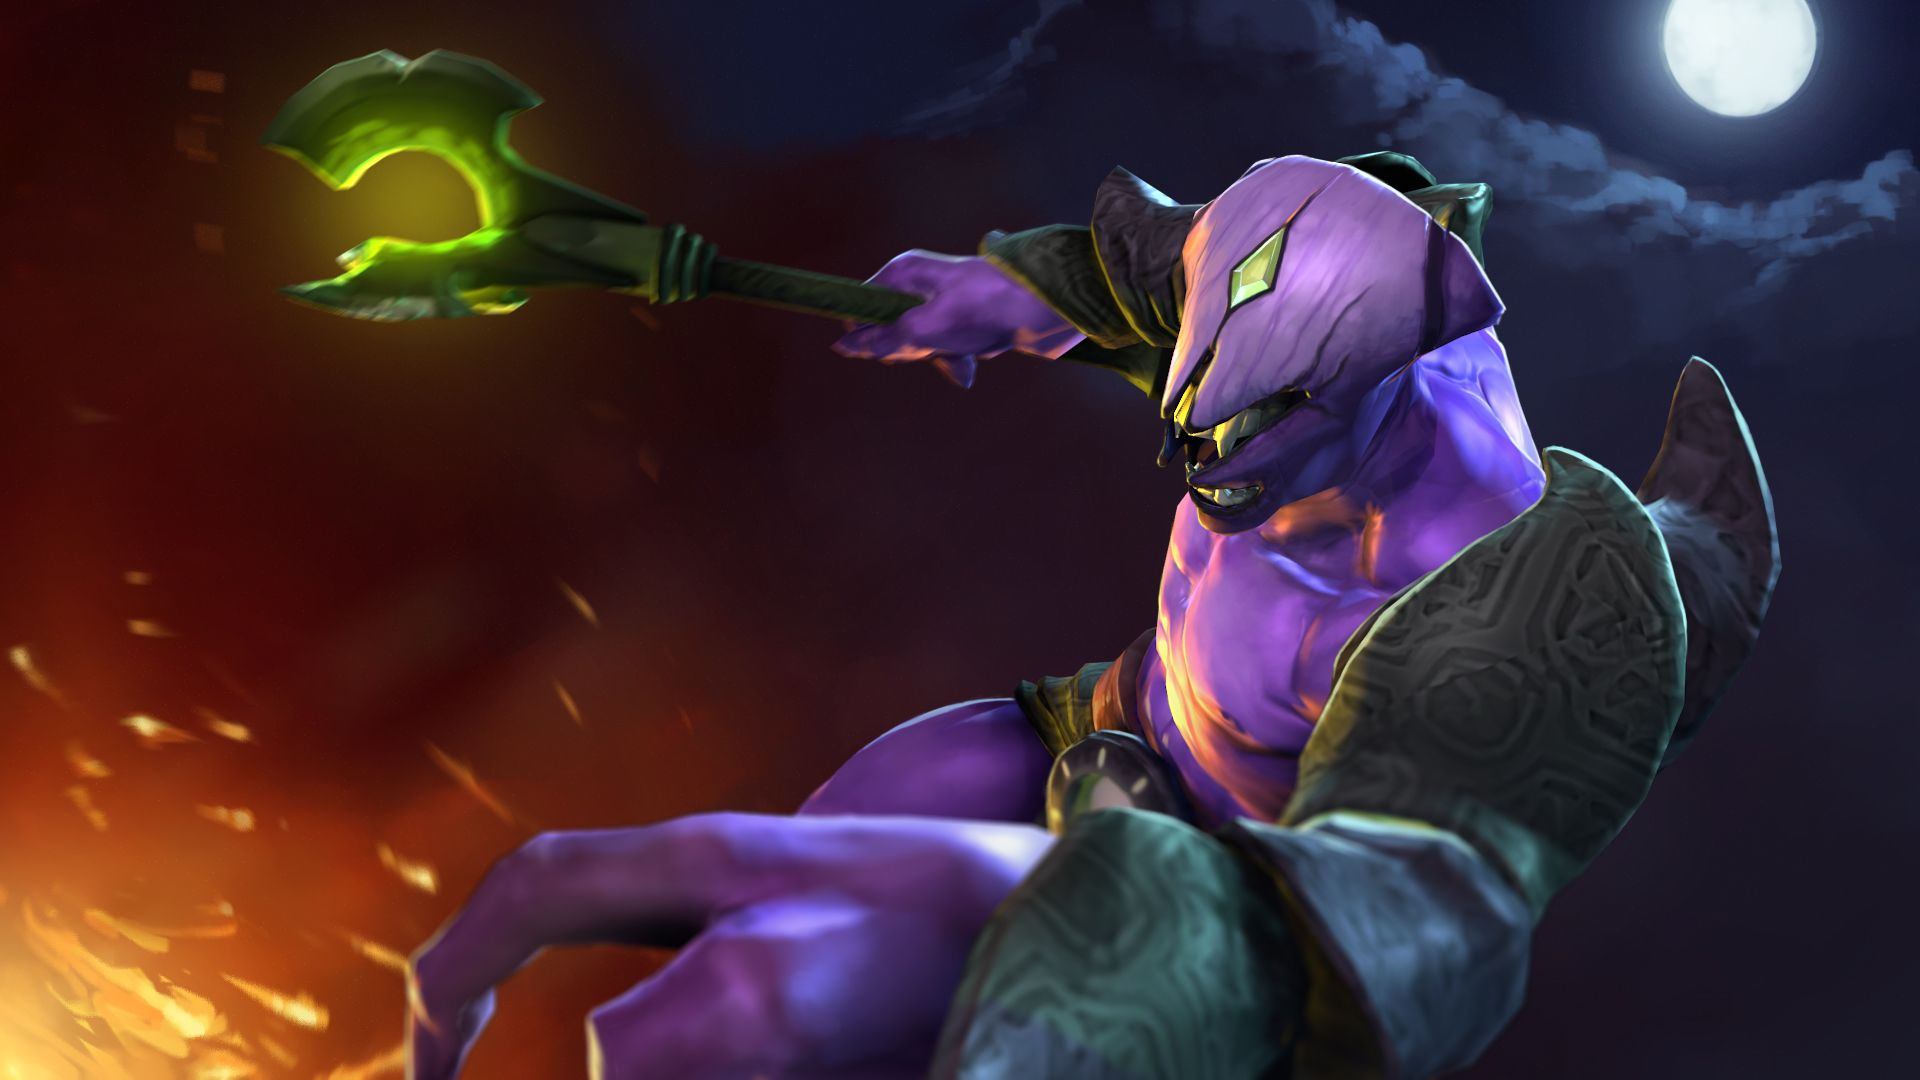 The Faceless Wallpapers Music Hq The Faceless Pictures K Dota 2 The Faceless Dota 2 Wallpaper